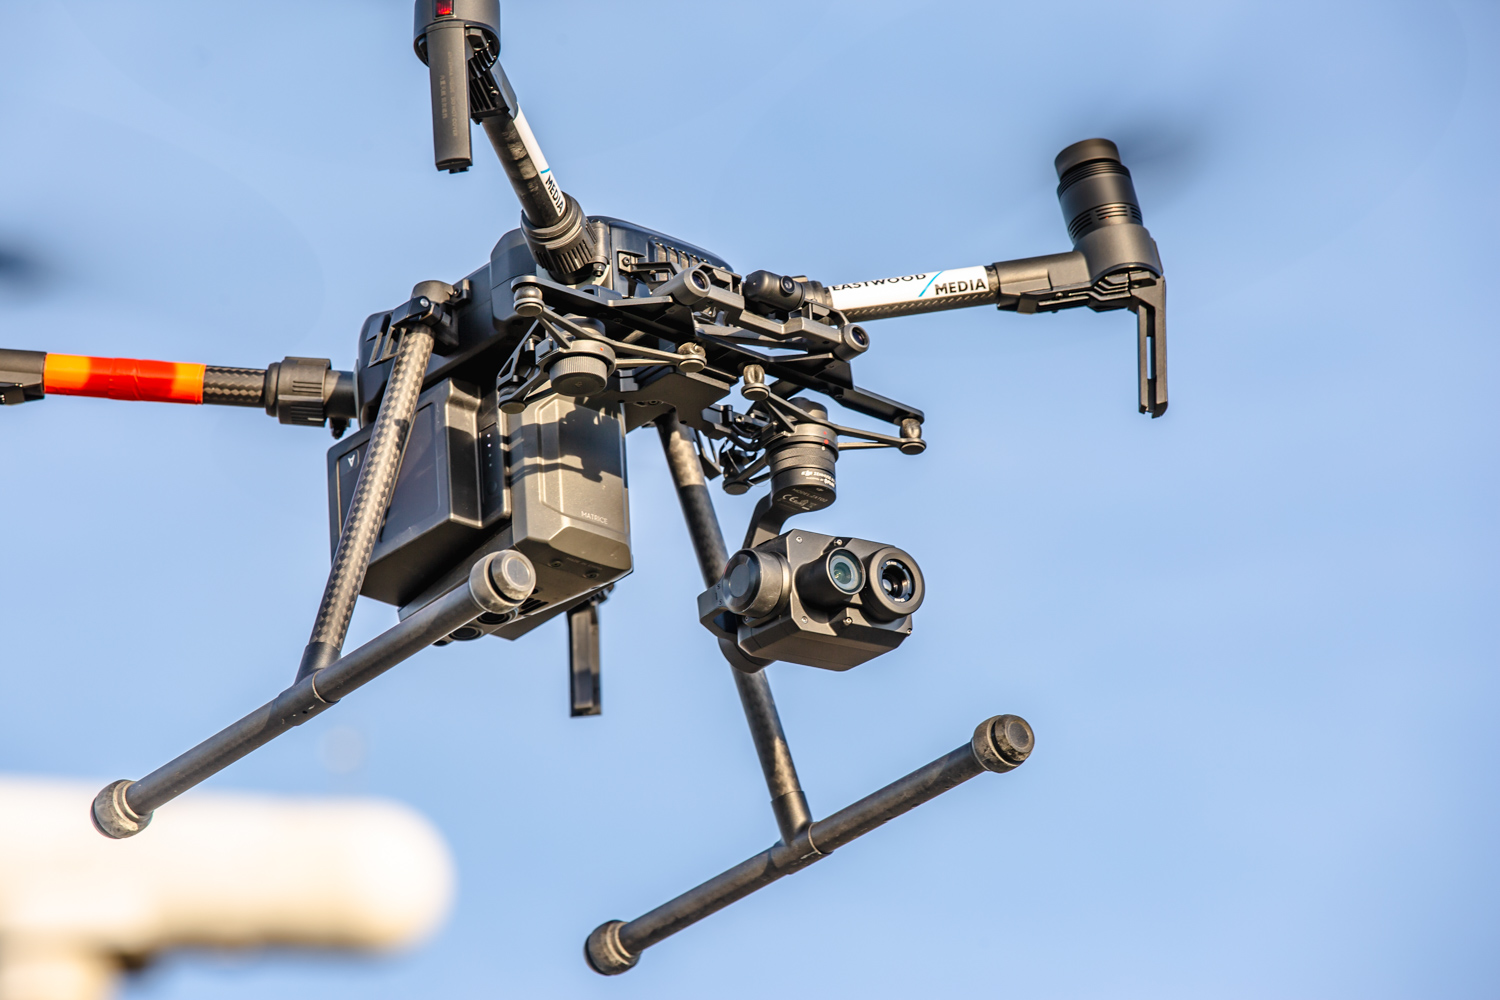 drone_filming_aerial_imagery_north_wales_drone_experts-2.jpg